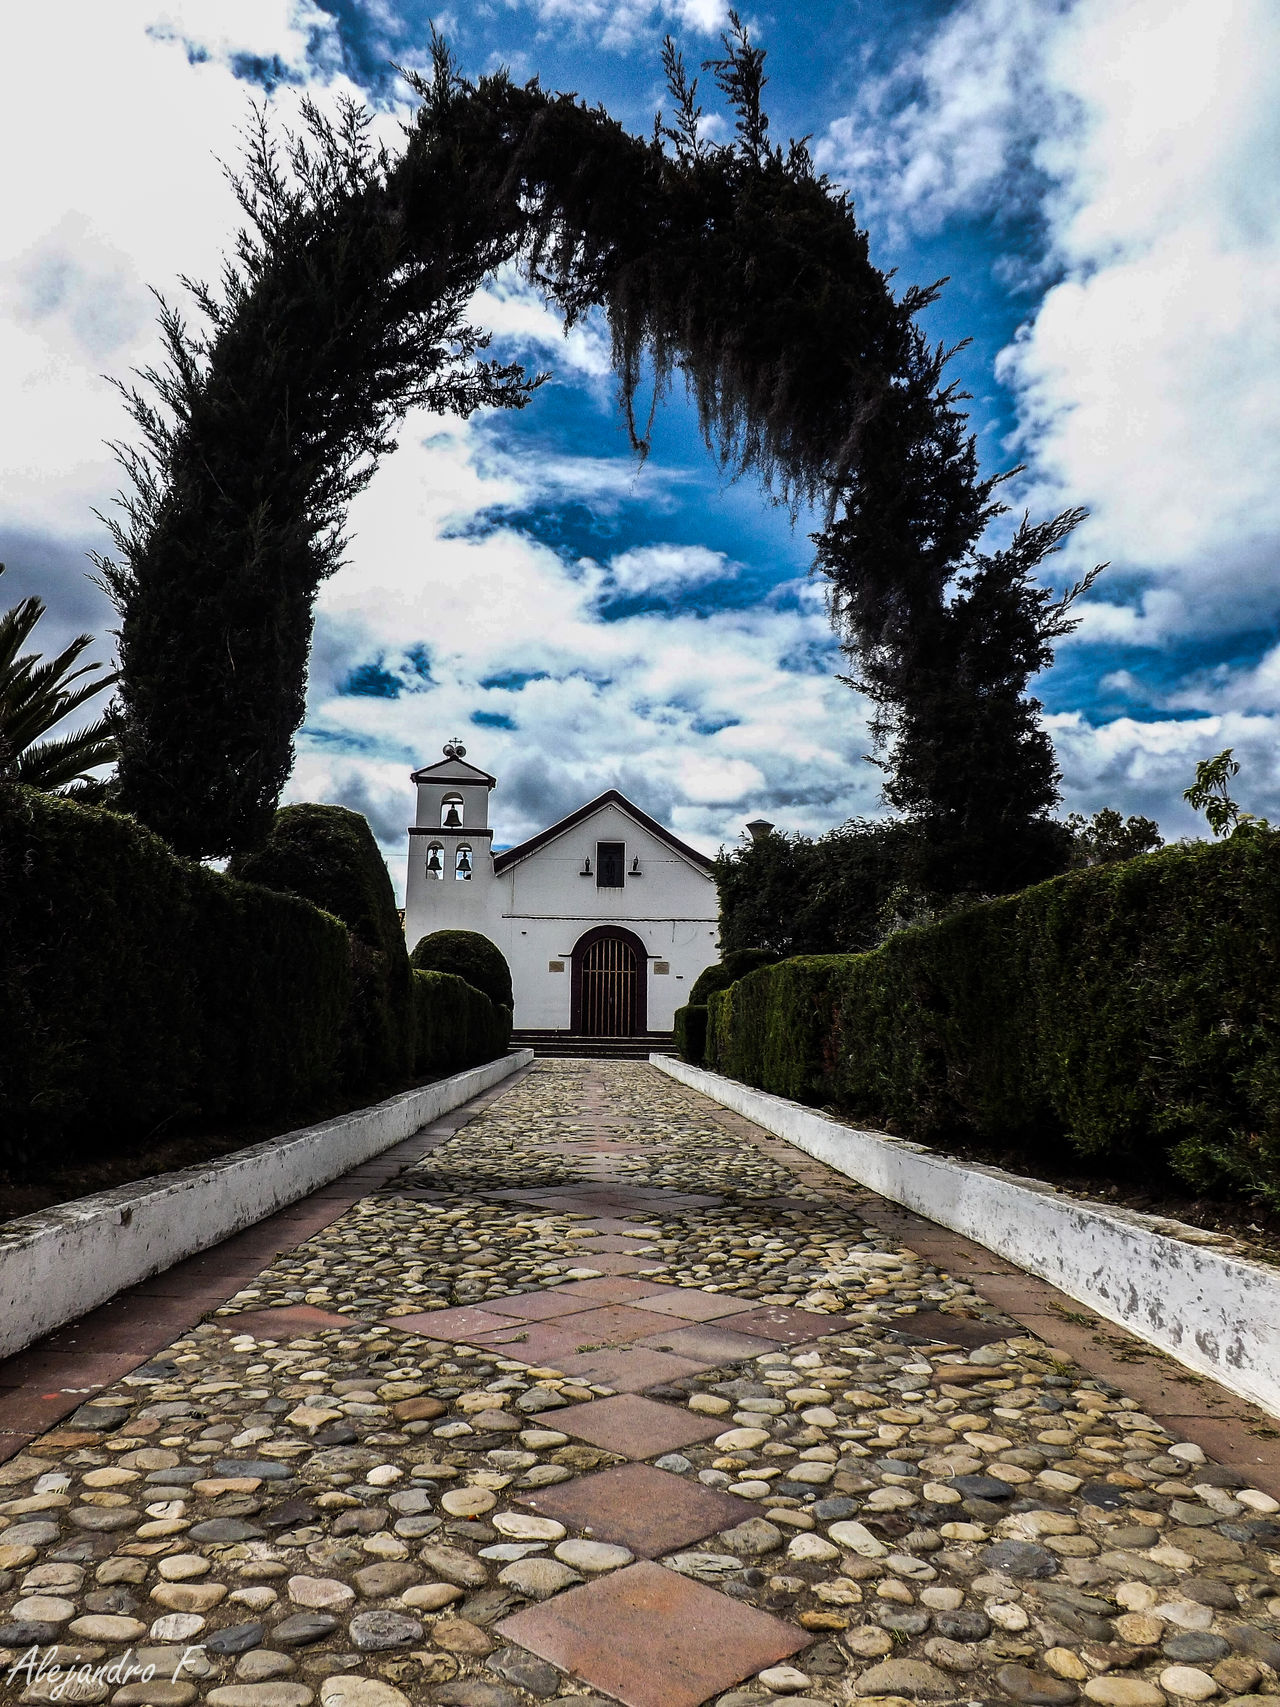 Singular Vol 2 Boyaca Canon Clouds Colombia Colors Eyem Best Shots Eyem Gallery Eyemphotography Fujifilm Music Nature Nature Photography Nature_collection New Old Old Buildings Outdoors Park Photooftheday Picoftheday Shotoftheday Sky Sky And Clouds Sound Textures And Surfaces